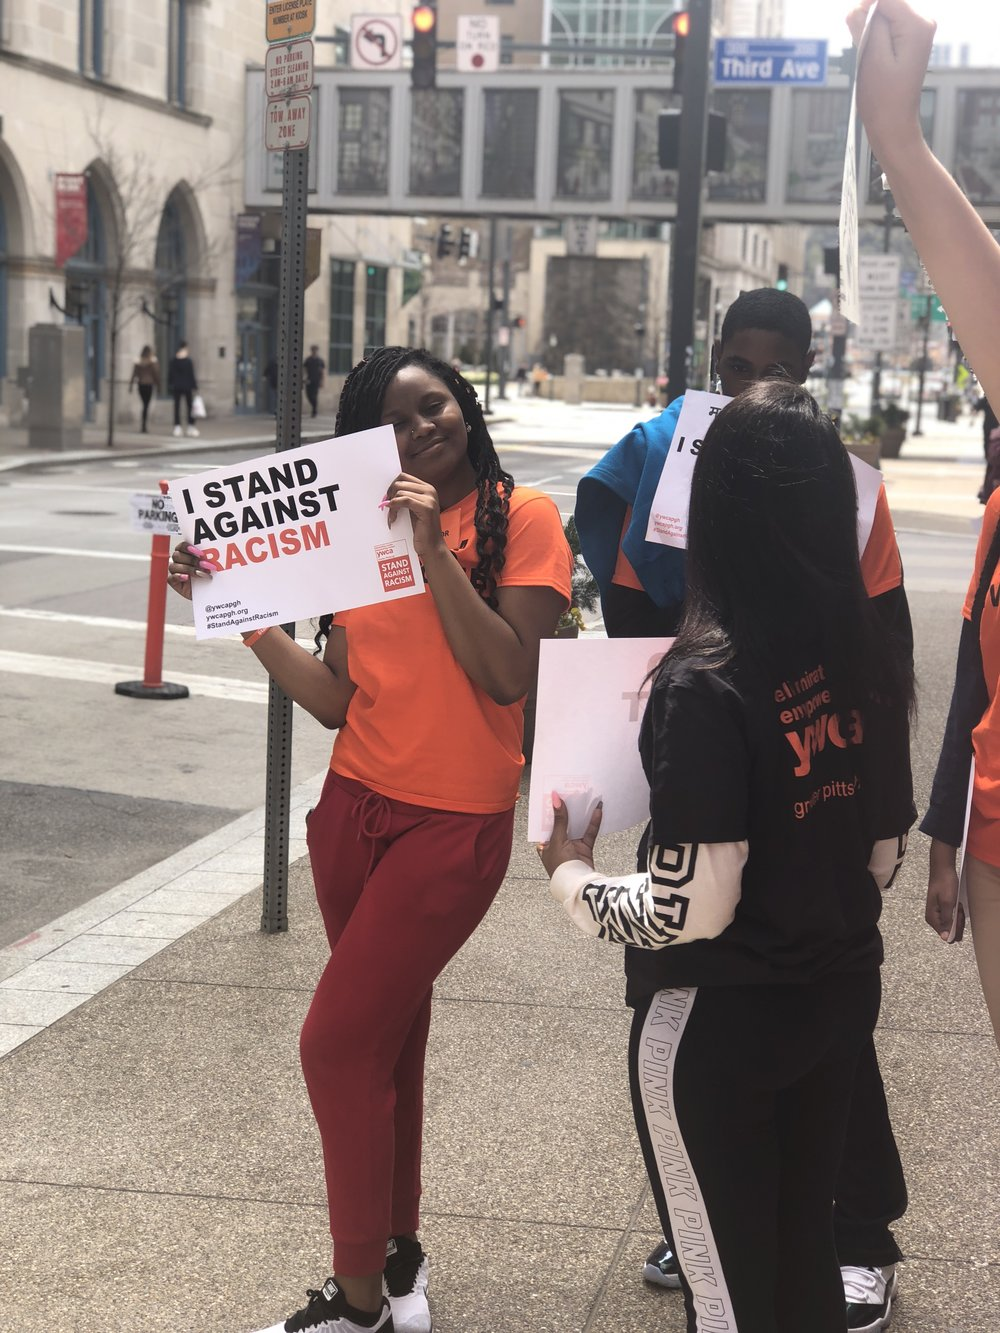 BSU at the stand against racism (8).jpg